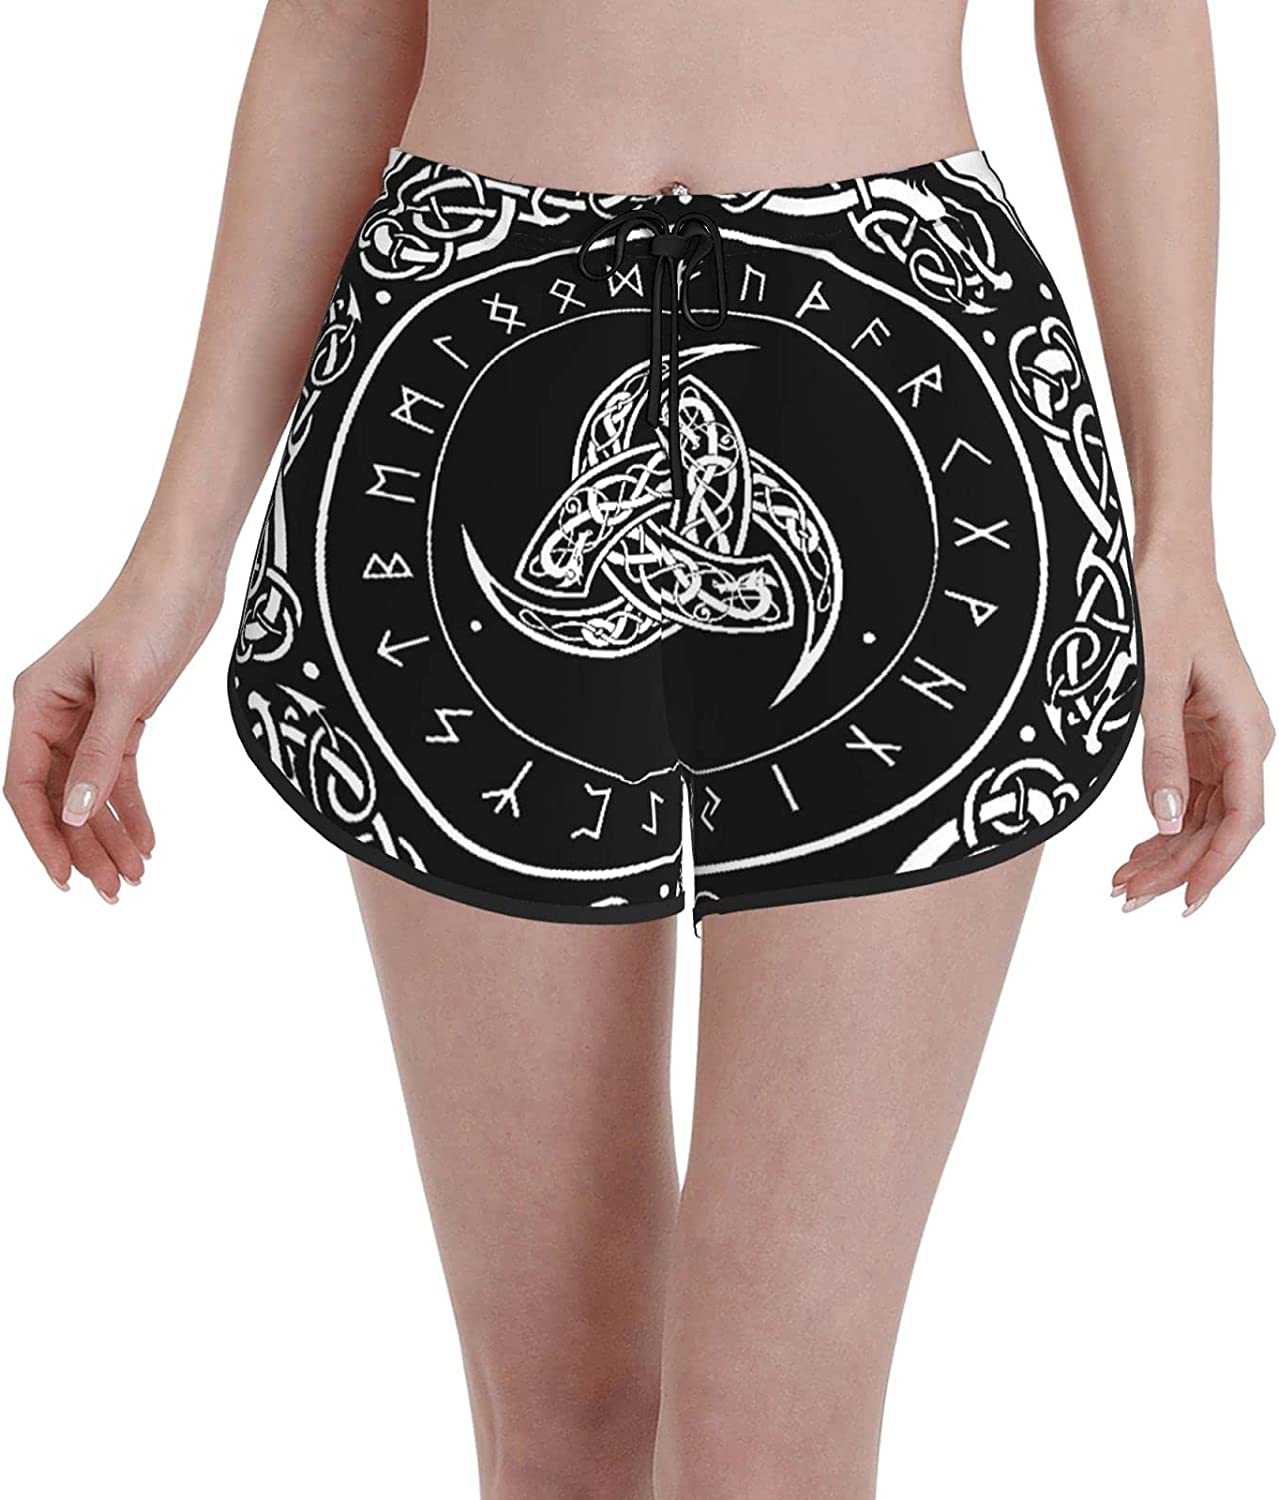 Minalo Women's Girl's Swim Trunks,Gothic Triple Horn of Odin Decorated Scandinavic Ornaments and Runes Norse Amulet,Beachwear Swimsuits Board Shorts Bathing Suits,XXL